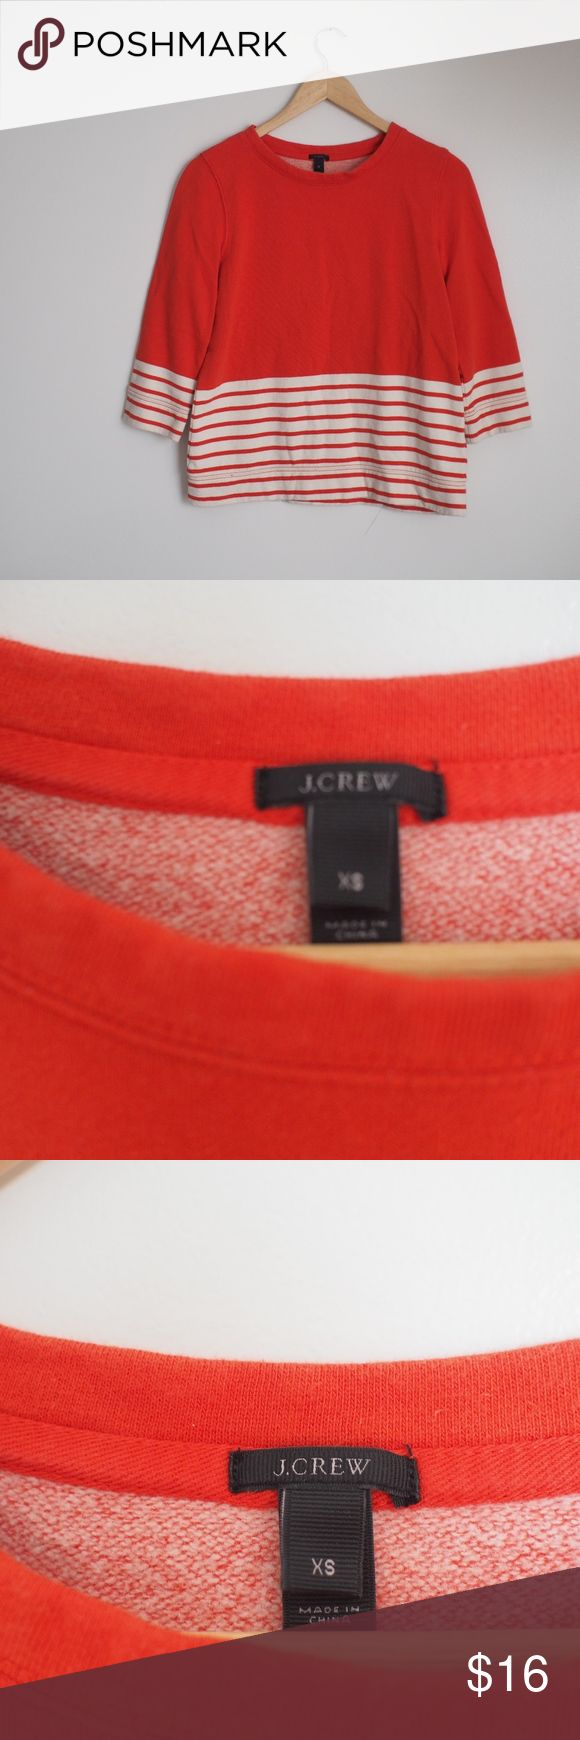 J. Crew Red Stripe crop sweatshirt Excellent condition red orange color cropped style sweatshirt with crew neck and oversized slouchy look. Super soft and cozy. No rips, stains or holes, Like new! J. Crew Tops Sweatshirts & Hoodies